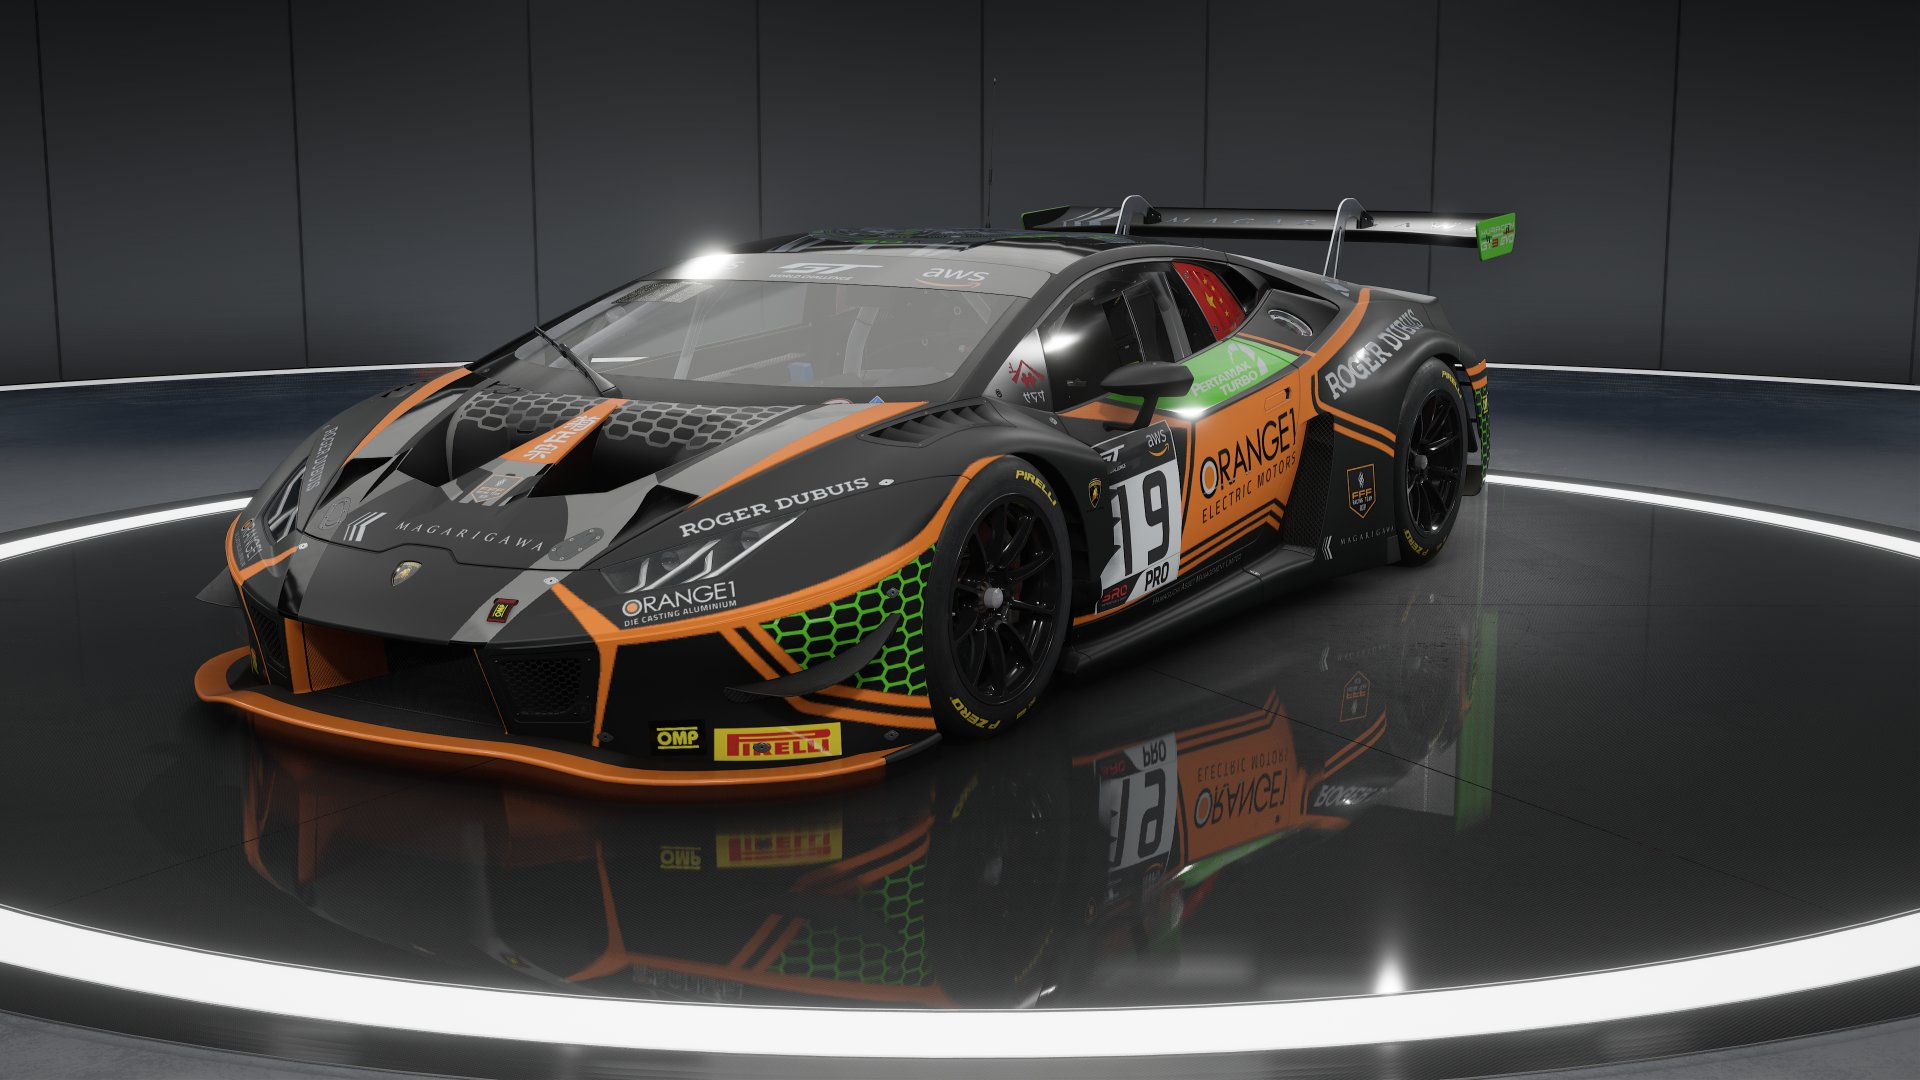 Lambo Newport Beach Twitterissa Lamborghini Has Assigned 3 Of Their Factory Drivers To Compete In The Sro E Sport Gt Series Featuring A Huracan Gt3 Evo Racing Will Begin With A Virtual Race